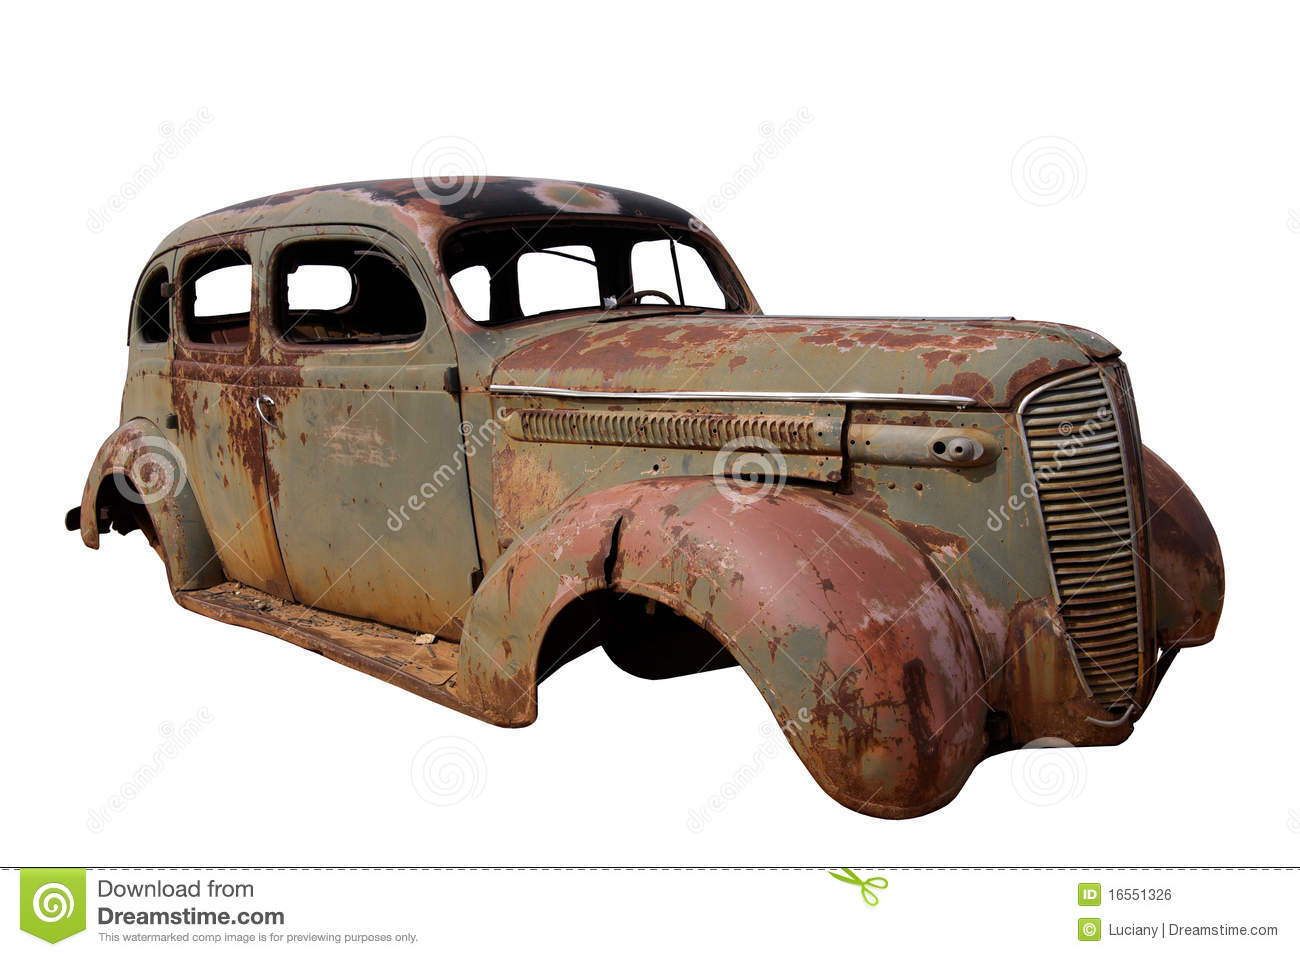 Old Rusted Car stock photo. Image of isolated, fashioned - 16551326